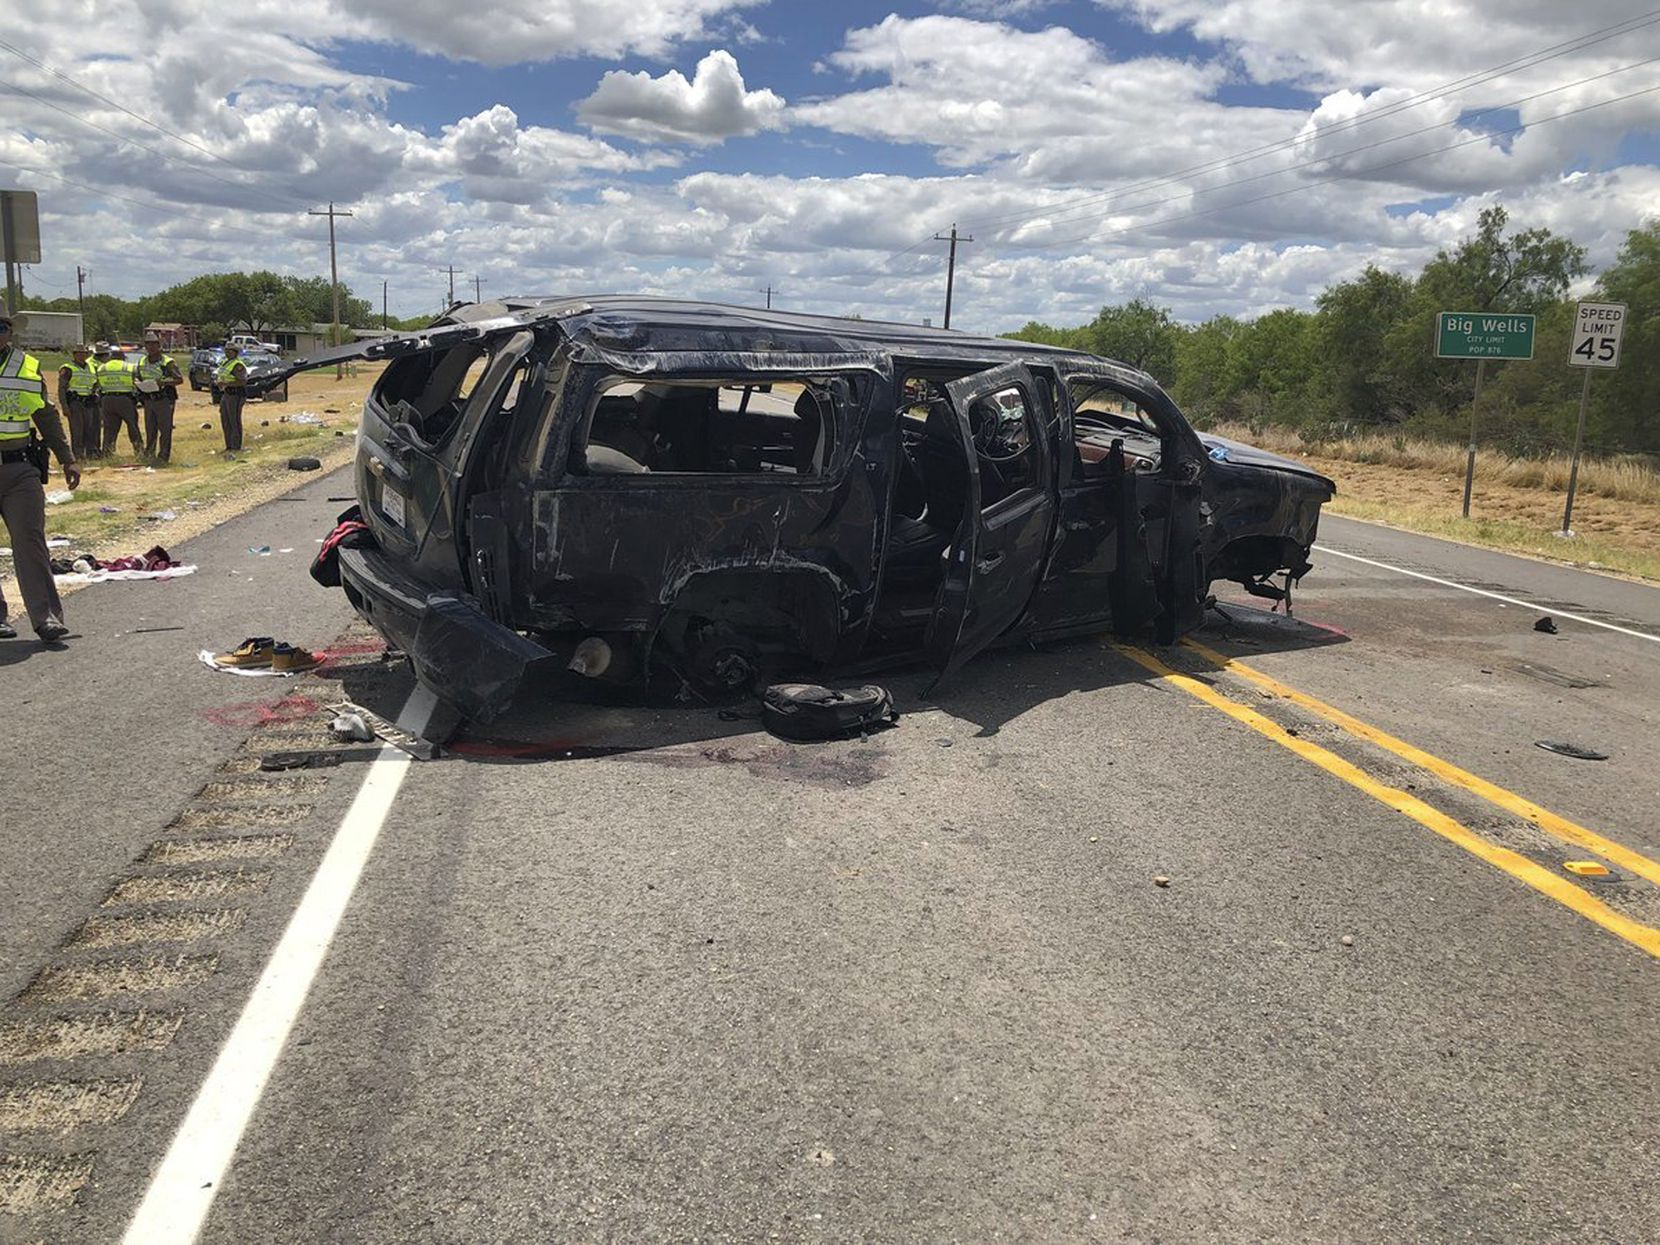 A heavily damaged SUV is seen on Texas Highway 85 in Big Wells, Texas, after crashing while carrying more than a dozen people fleeing from Border Patrol agents in June 2018.